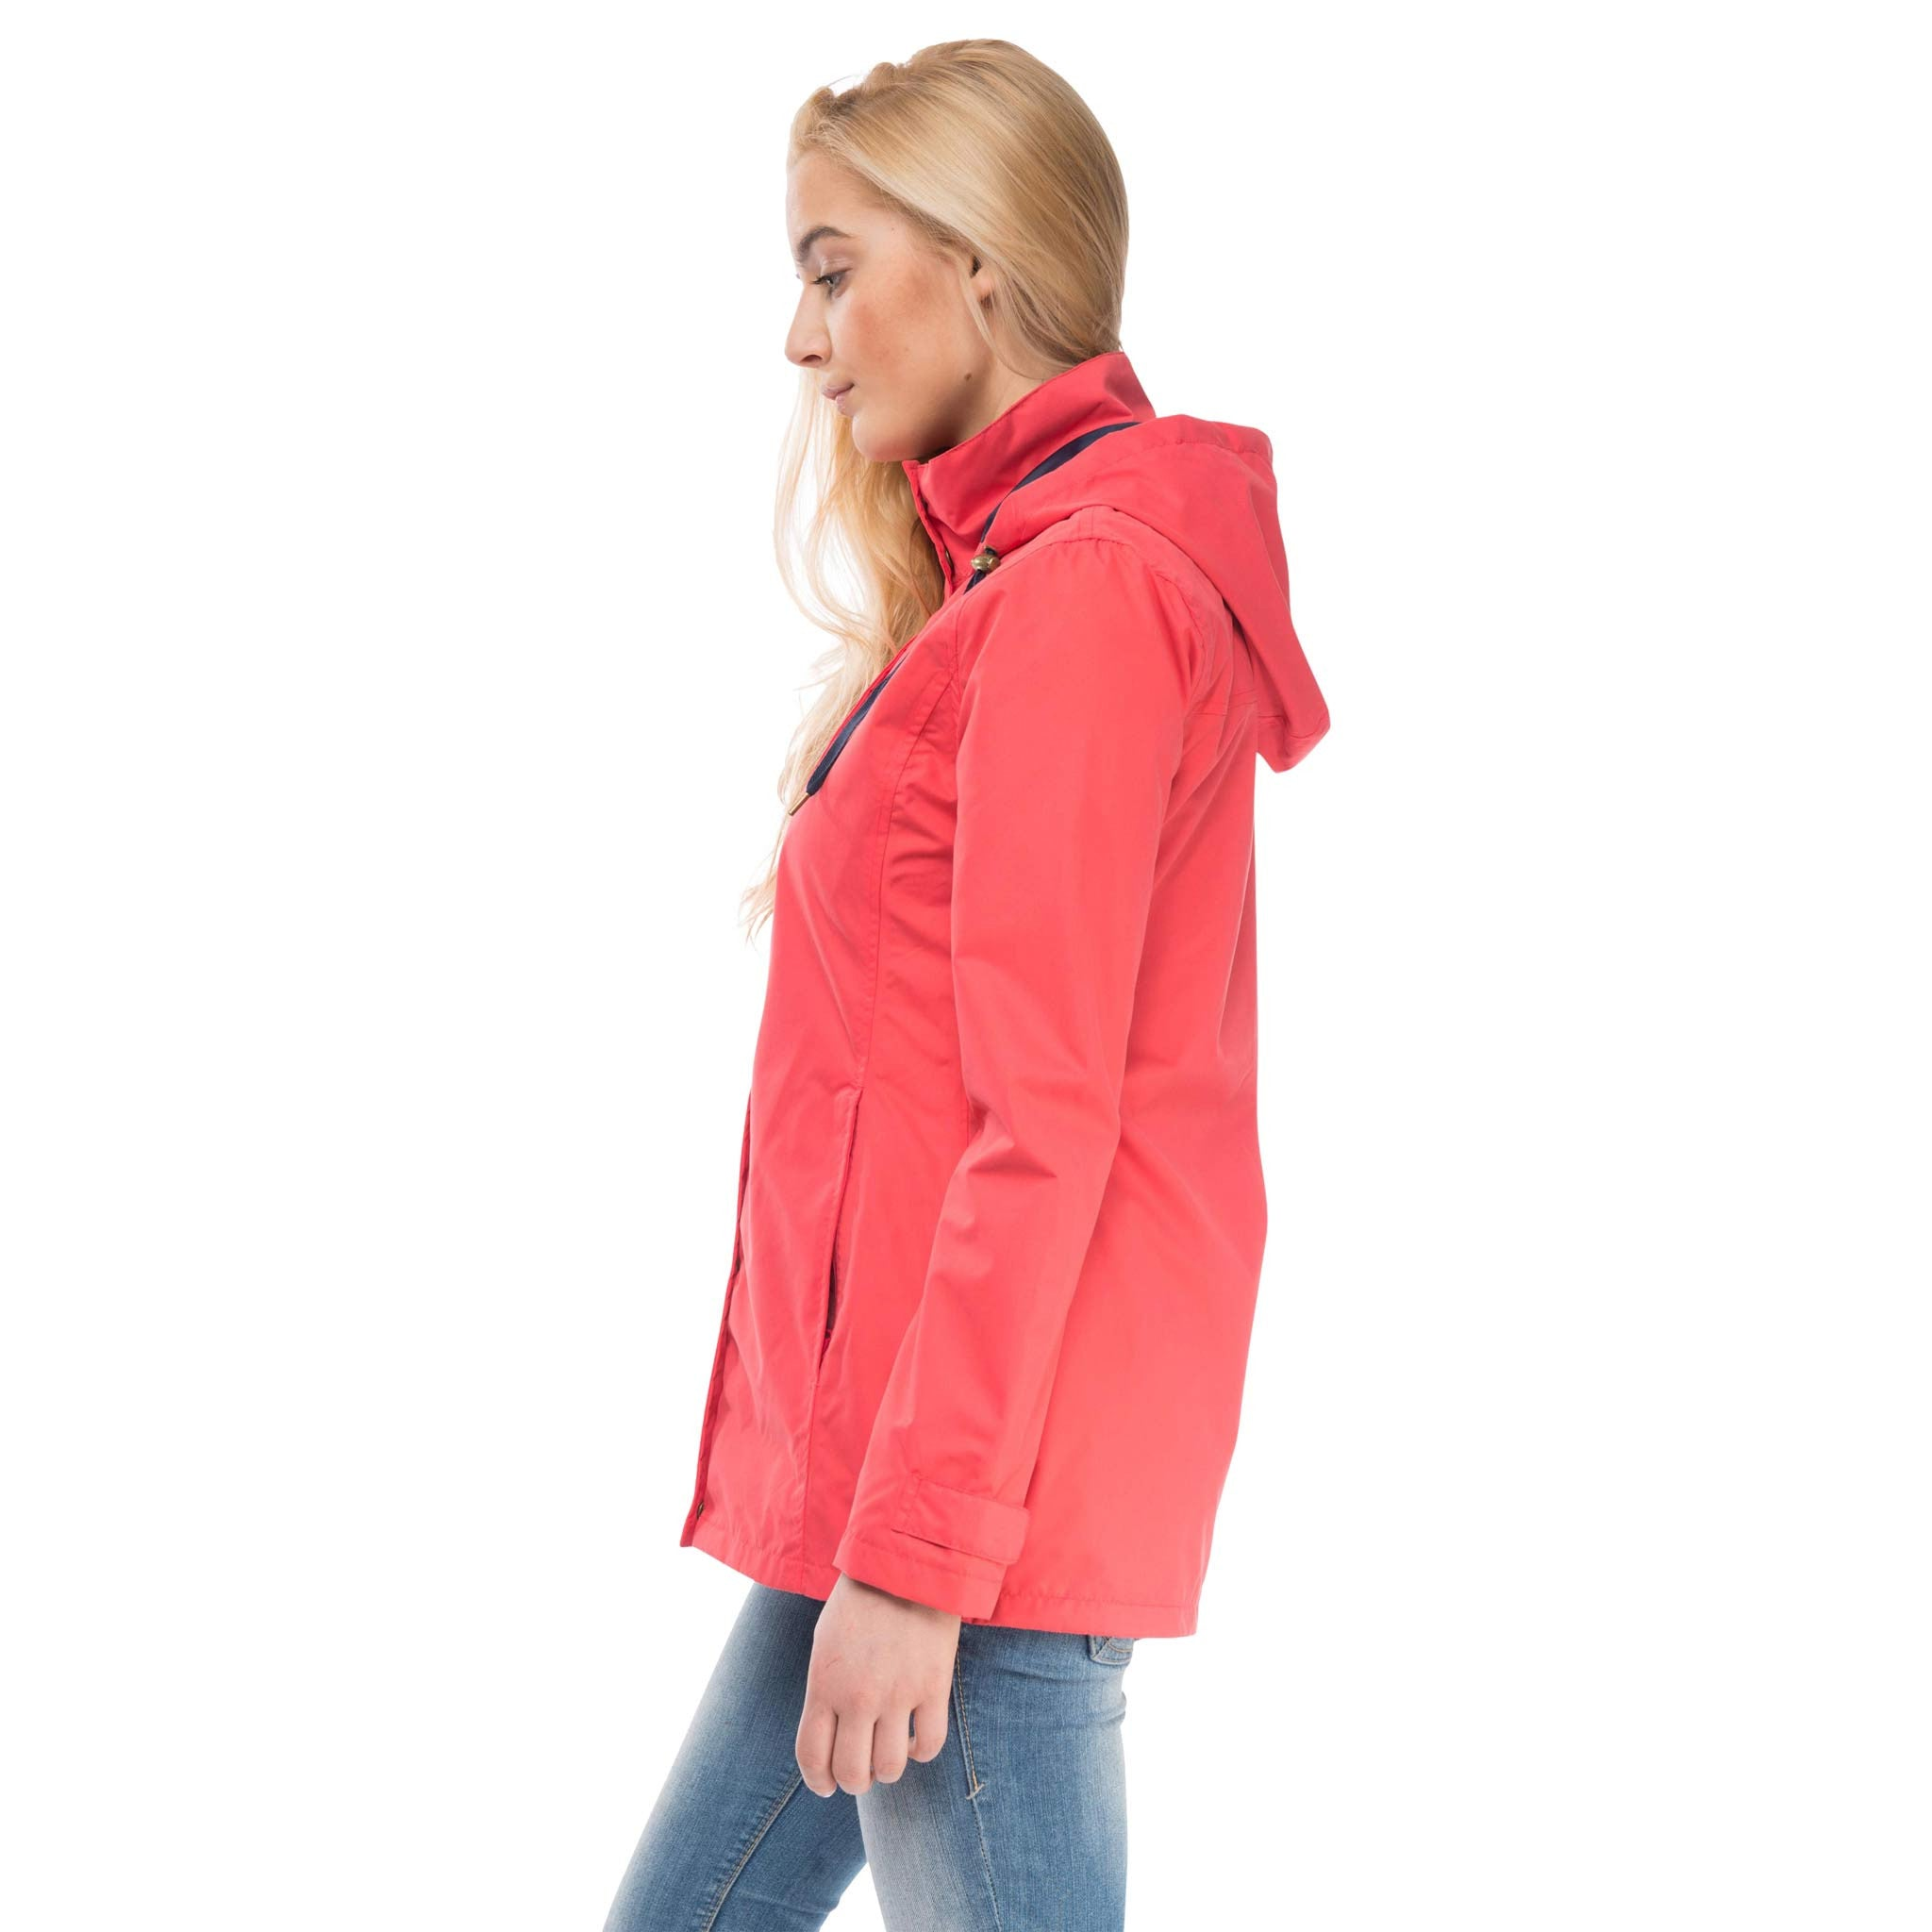 Beachcomber Waterproof Hooded Jacket in Watermelon Red, Modelled Side View | Lighthouse